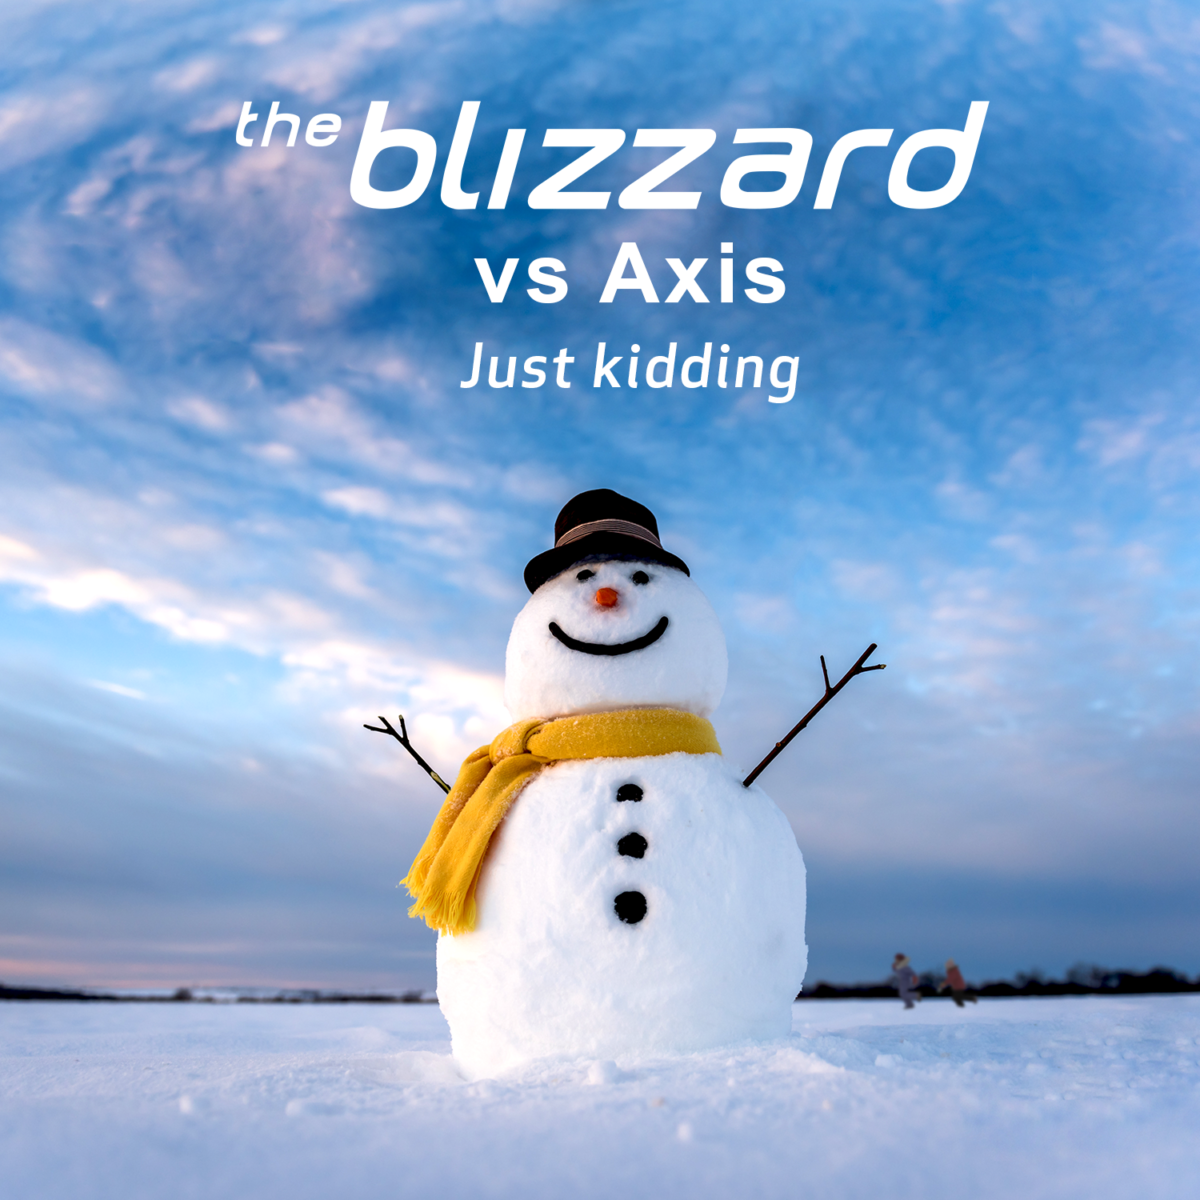 The Blizzard vs Axis - Just Kidding